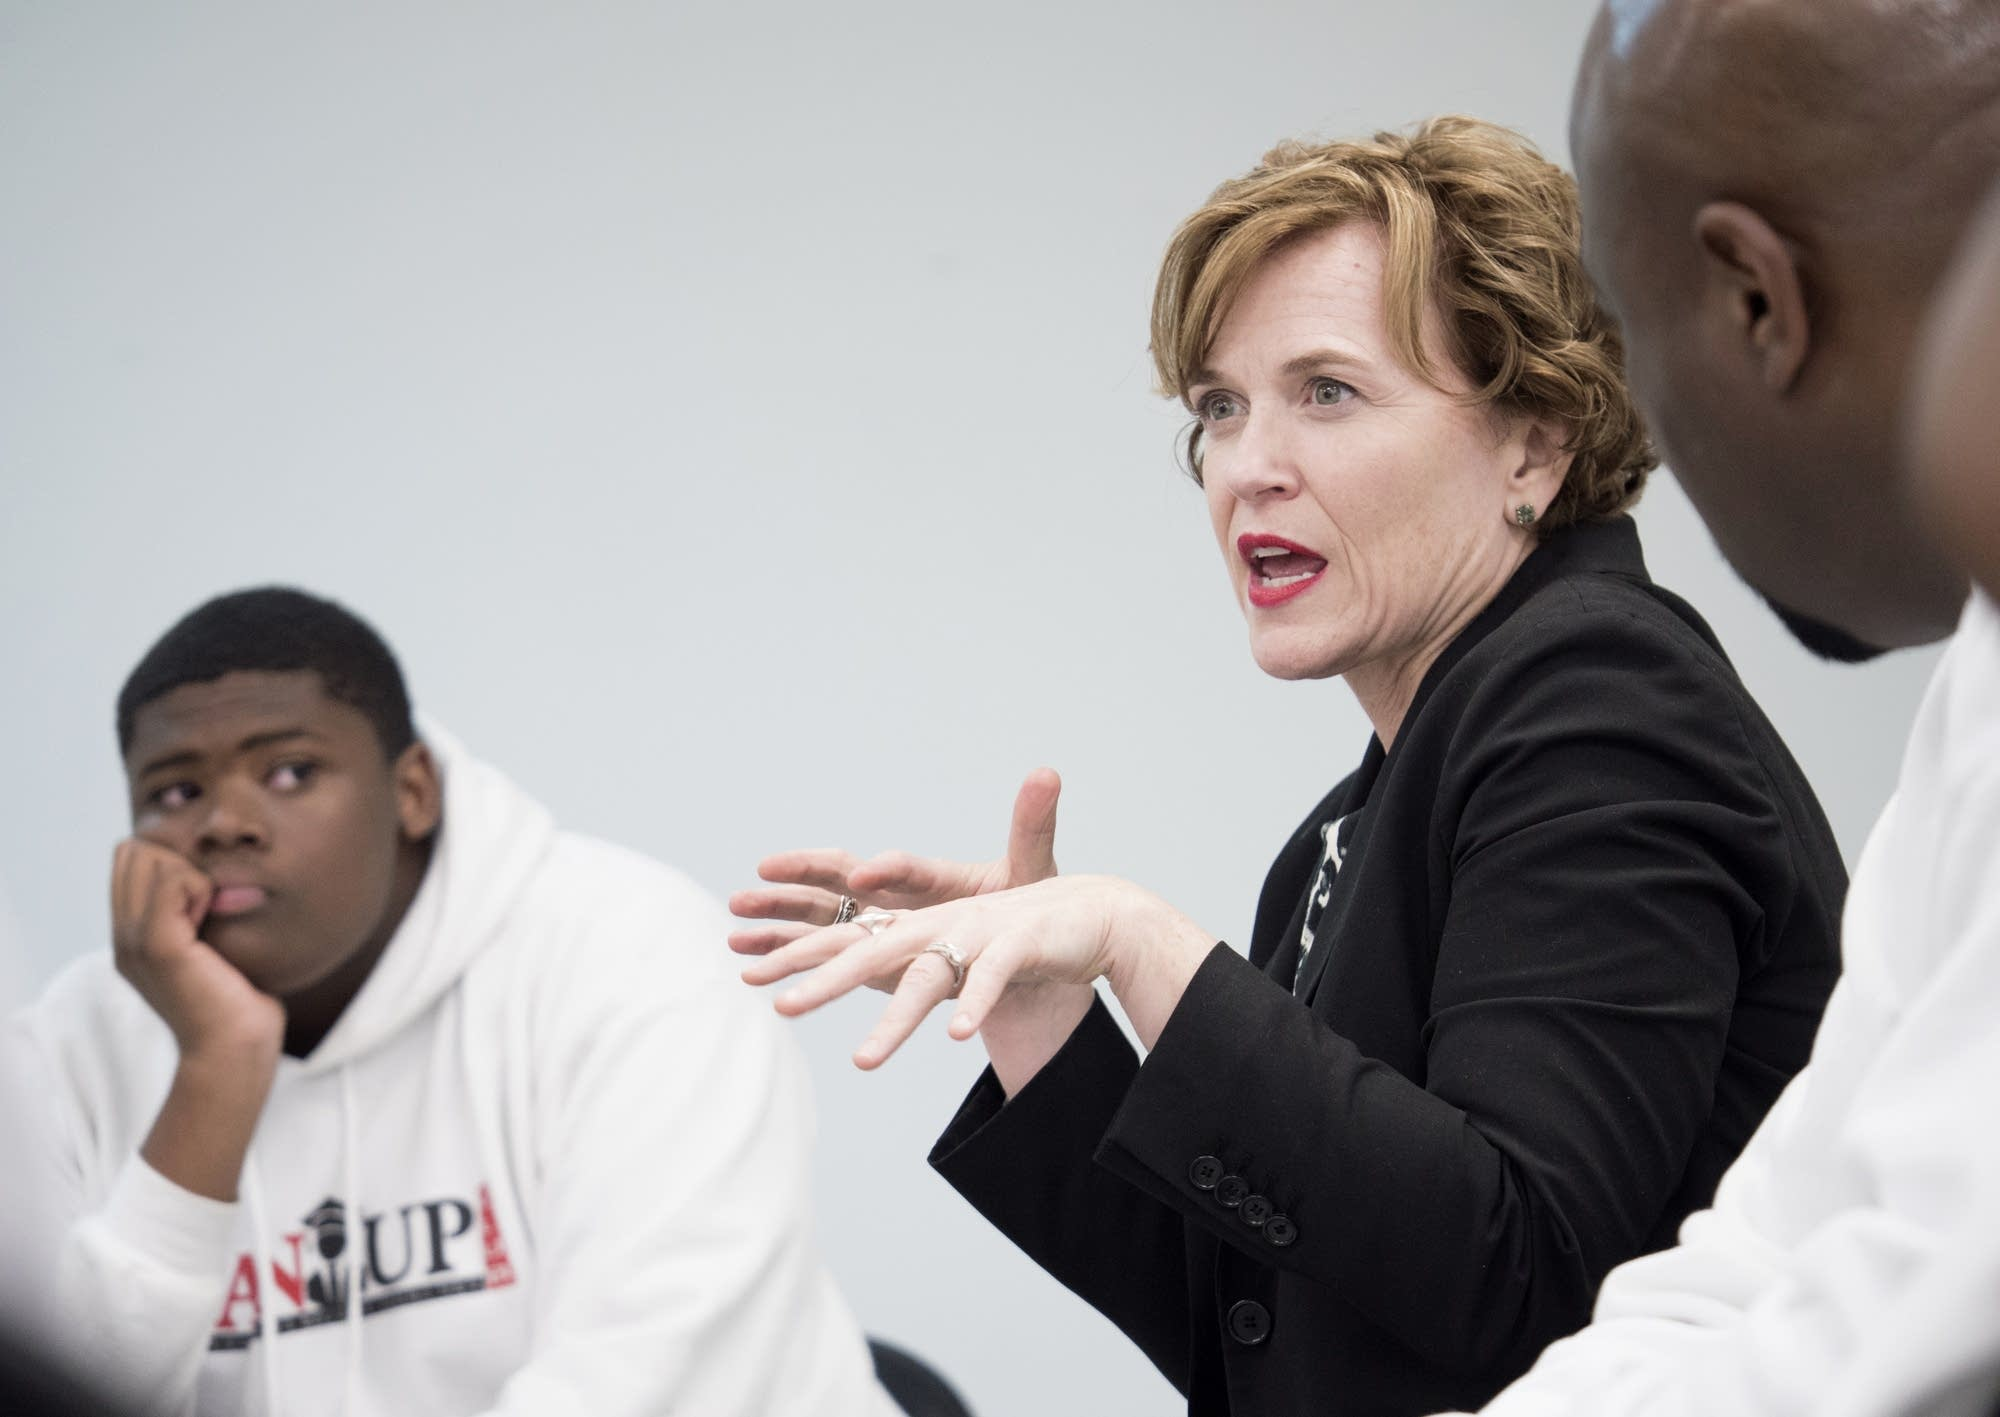 Minneapolis Mayor Betsy Hodges will step down in January